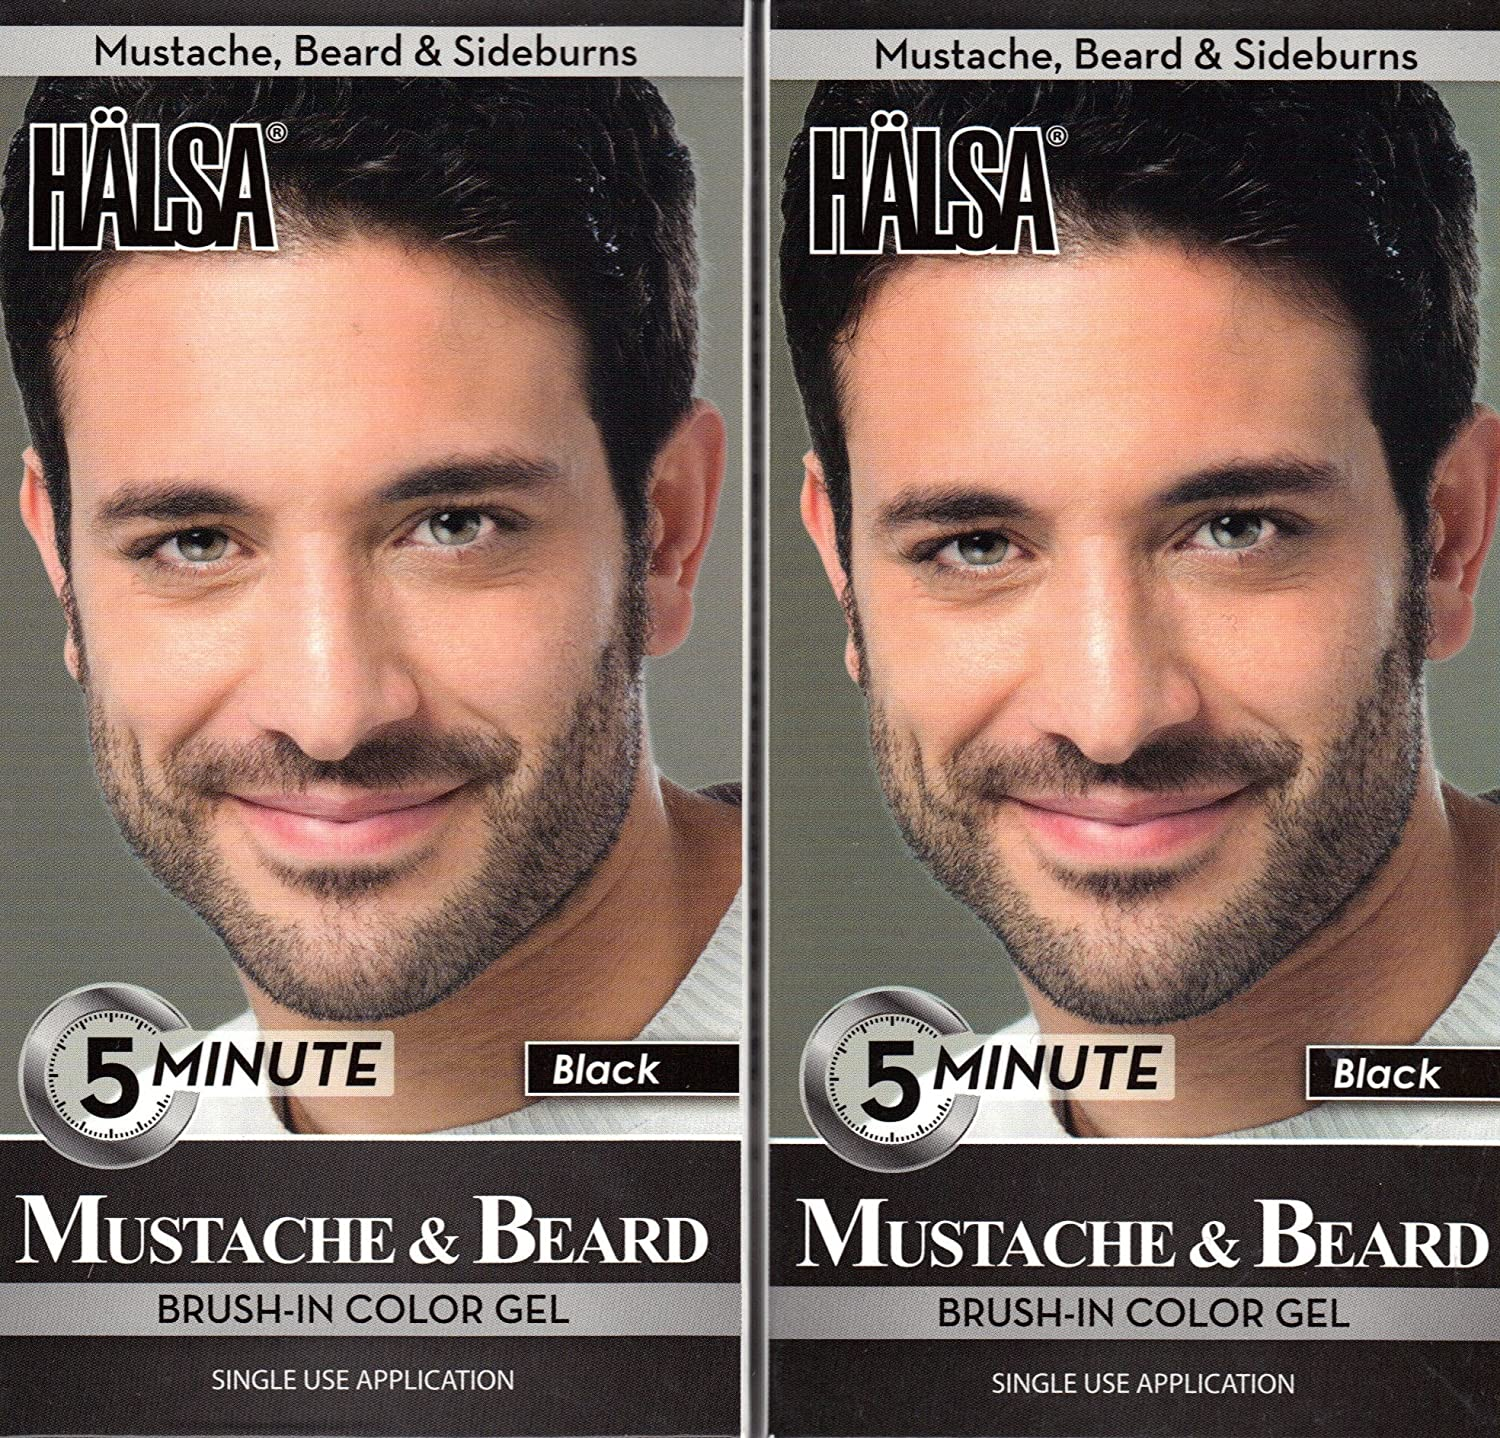 Amazon.com : Halsa Men Mustache & Beard Facial Hair Color Gel 5 ...